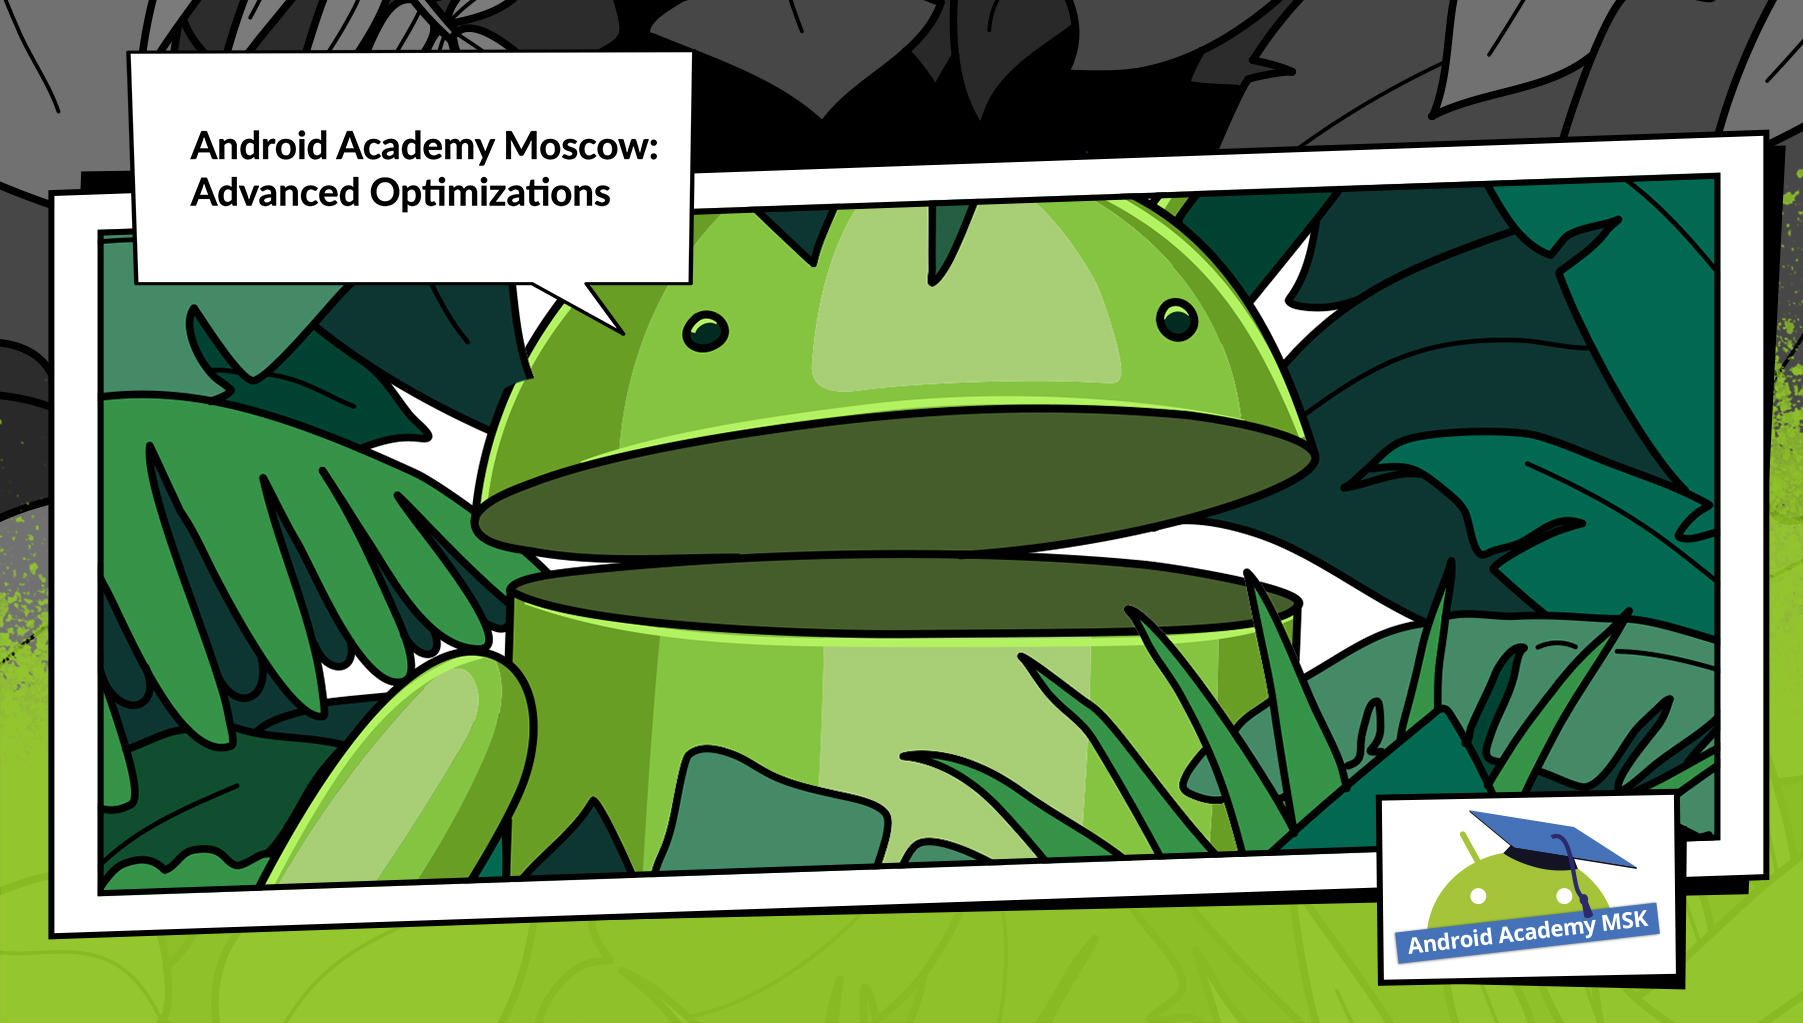 Android Academy MSK #1: Optimizations